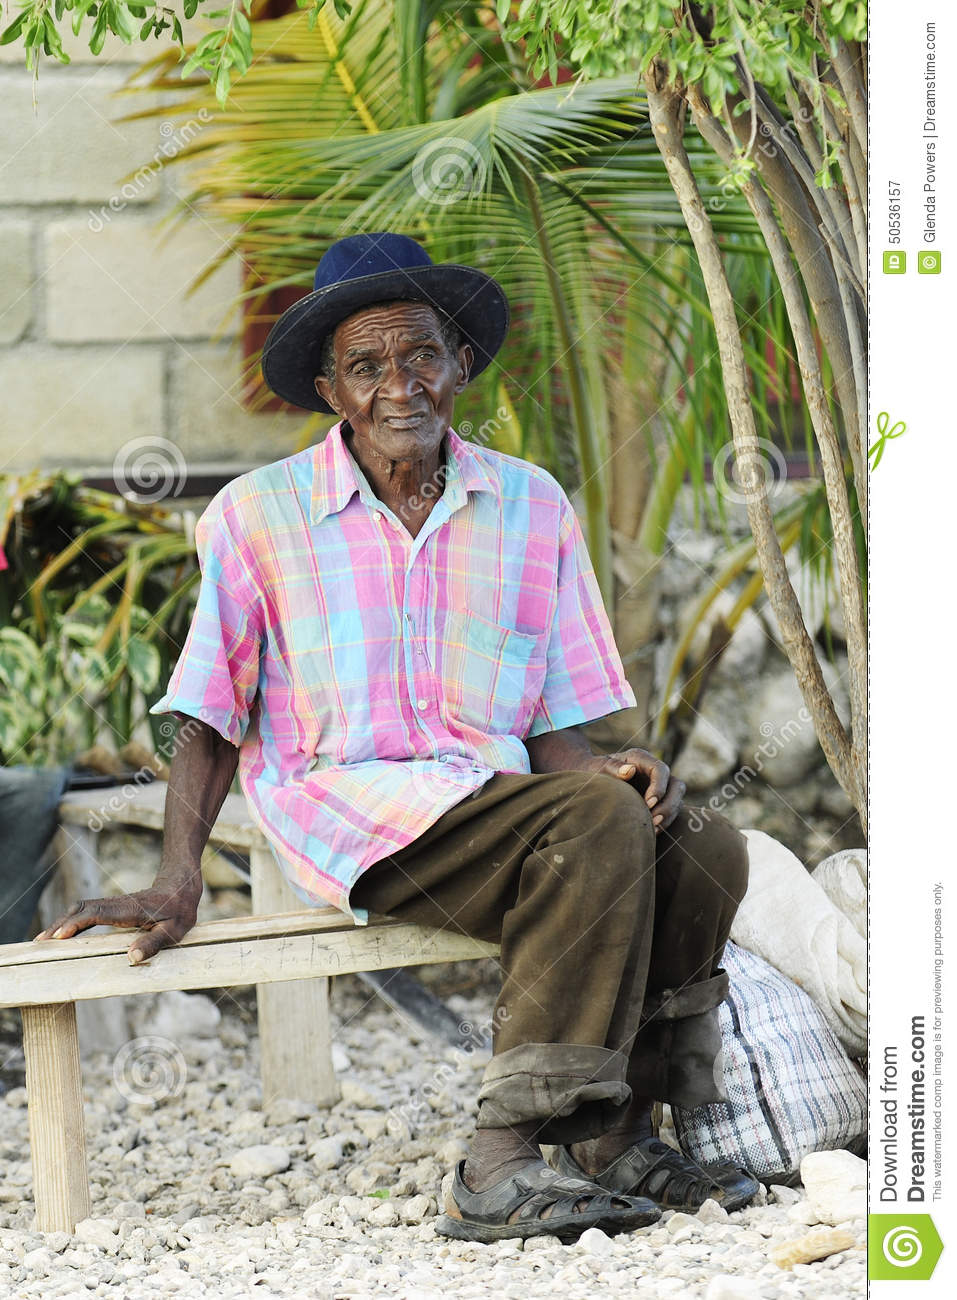 Elderly Bench Sitter Editorial Photography - Image: 50536157